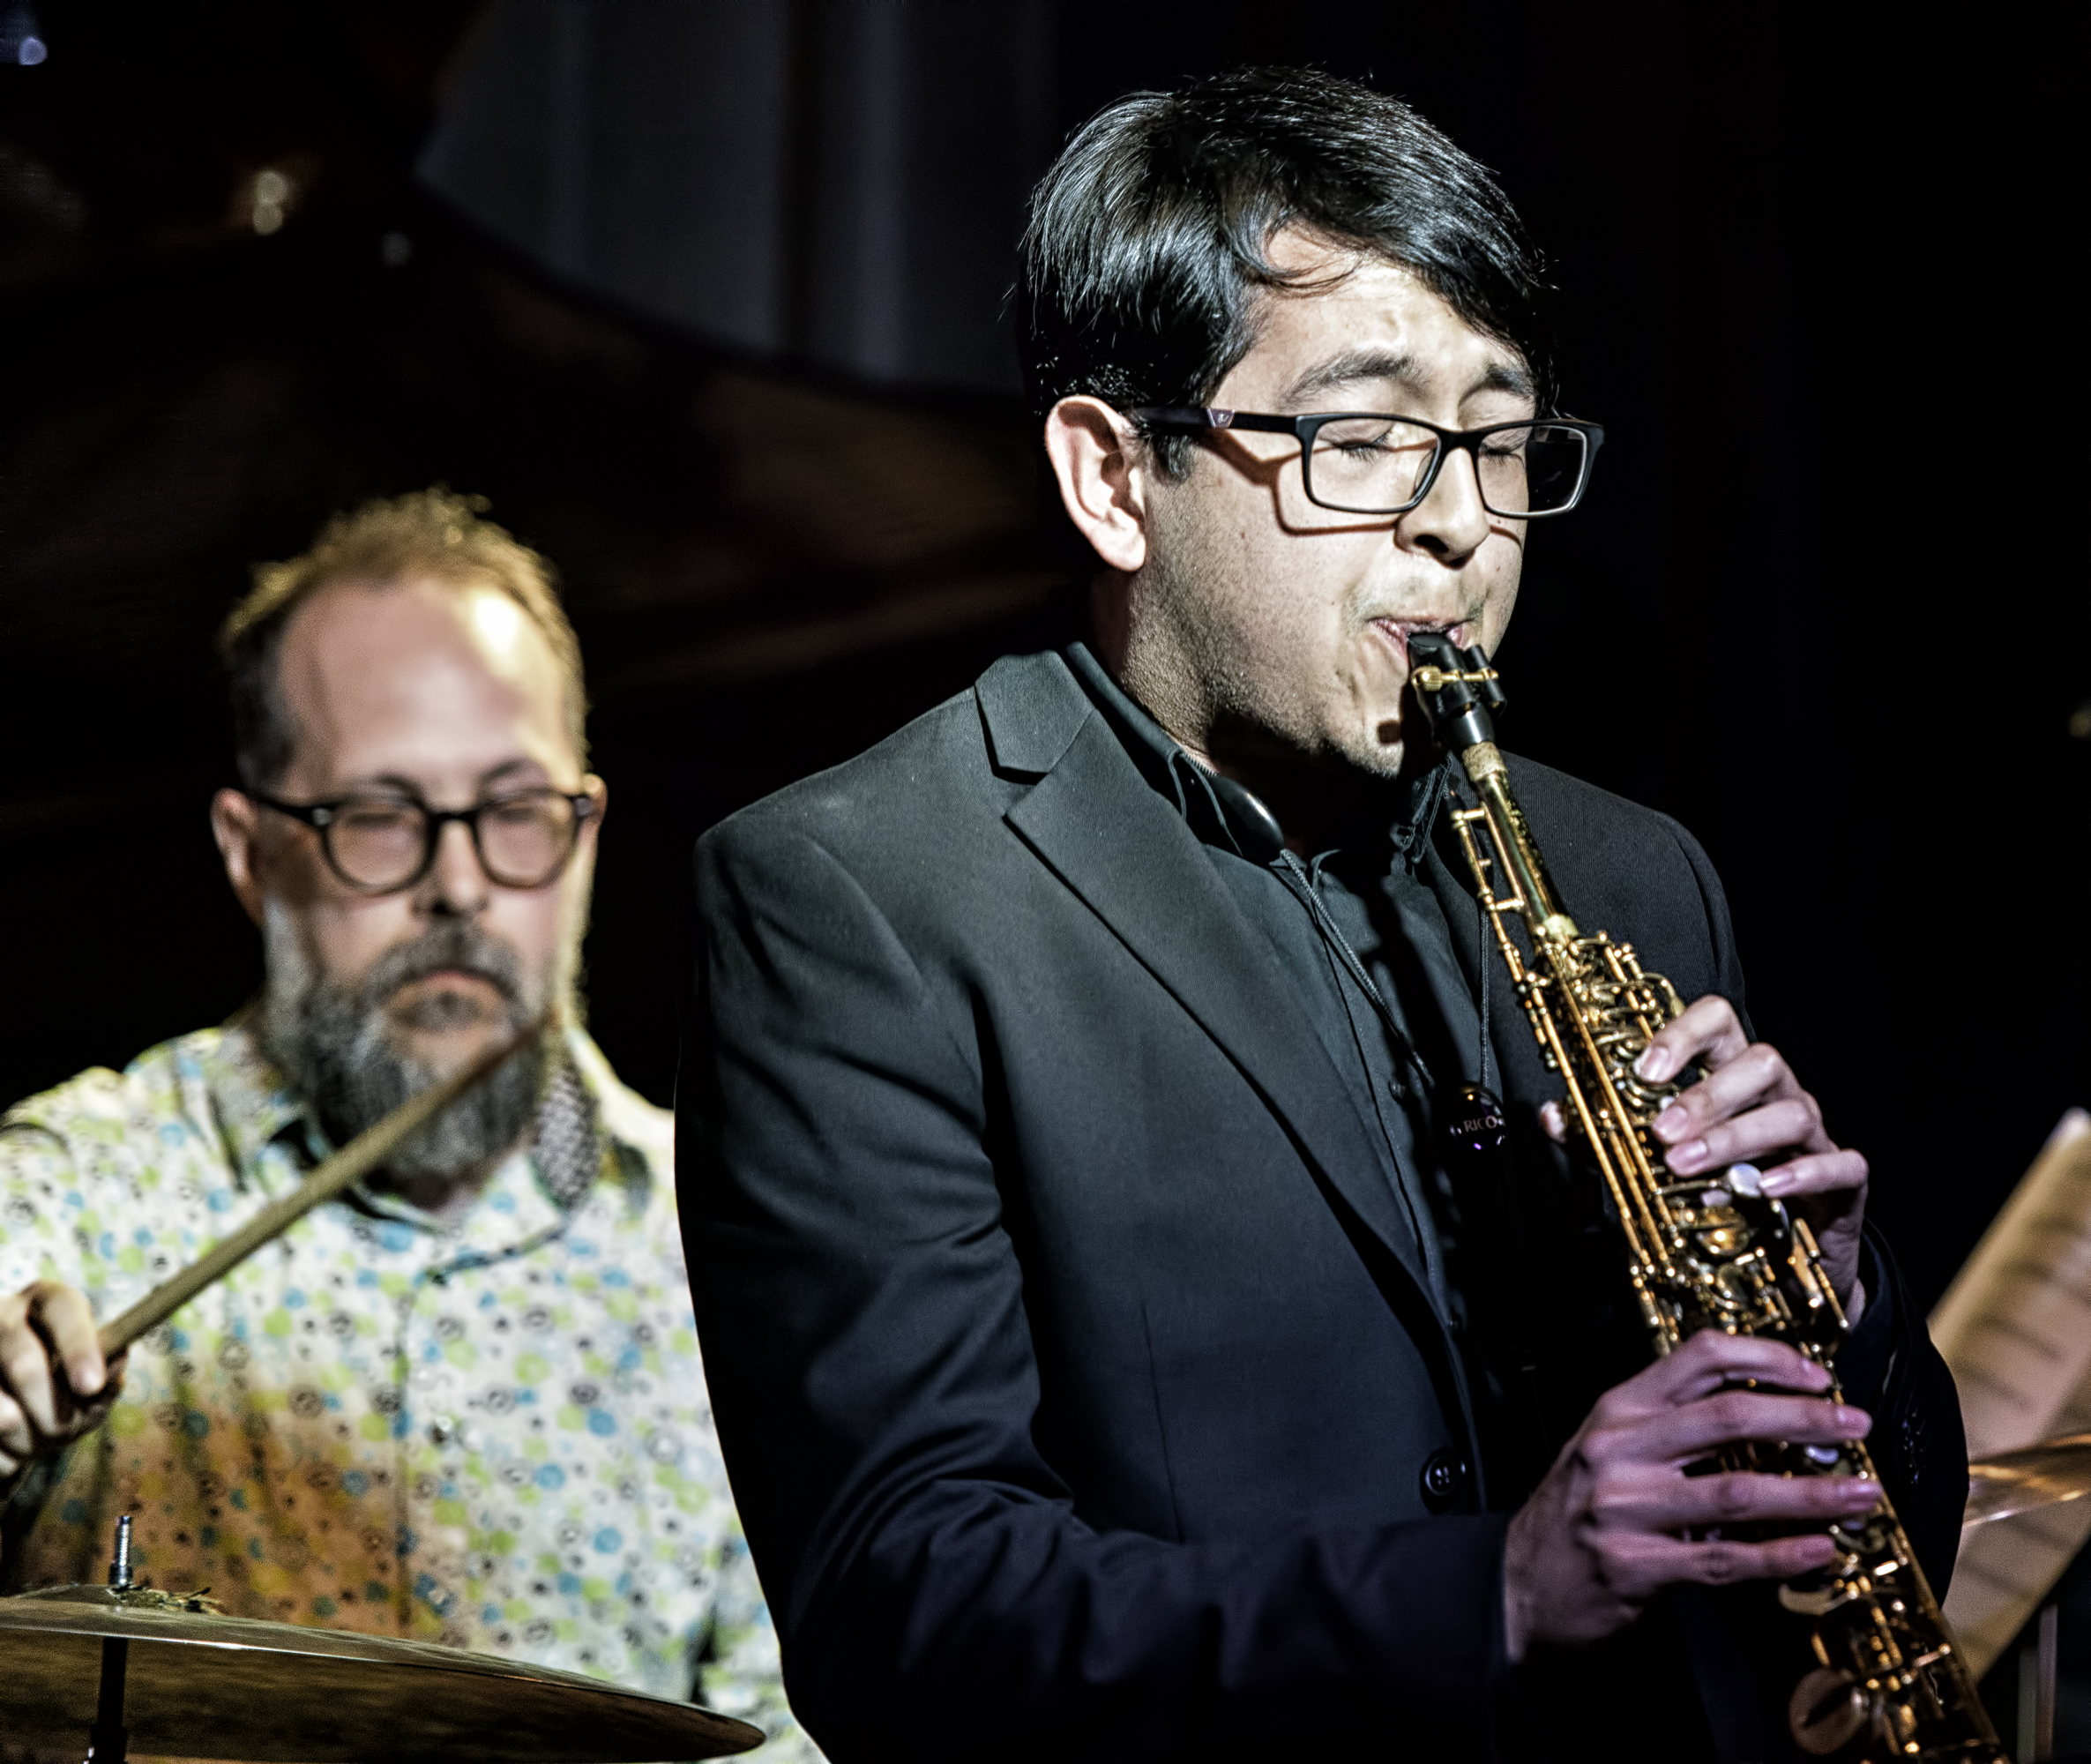 John Hollenbeck And Alan Costa With Eric Rasmussen And Scottsdale Community College Jazz Orchestra At The Nash In Phoenix